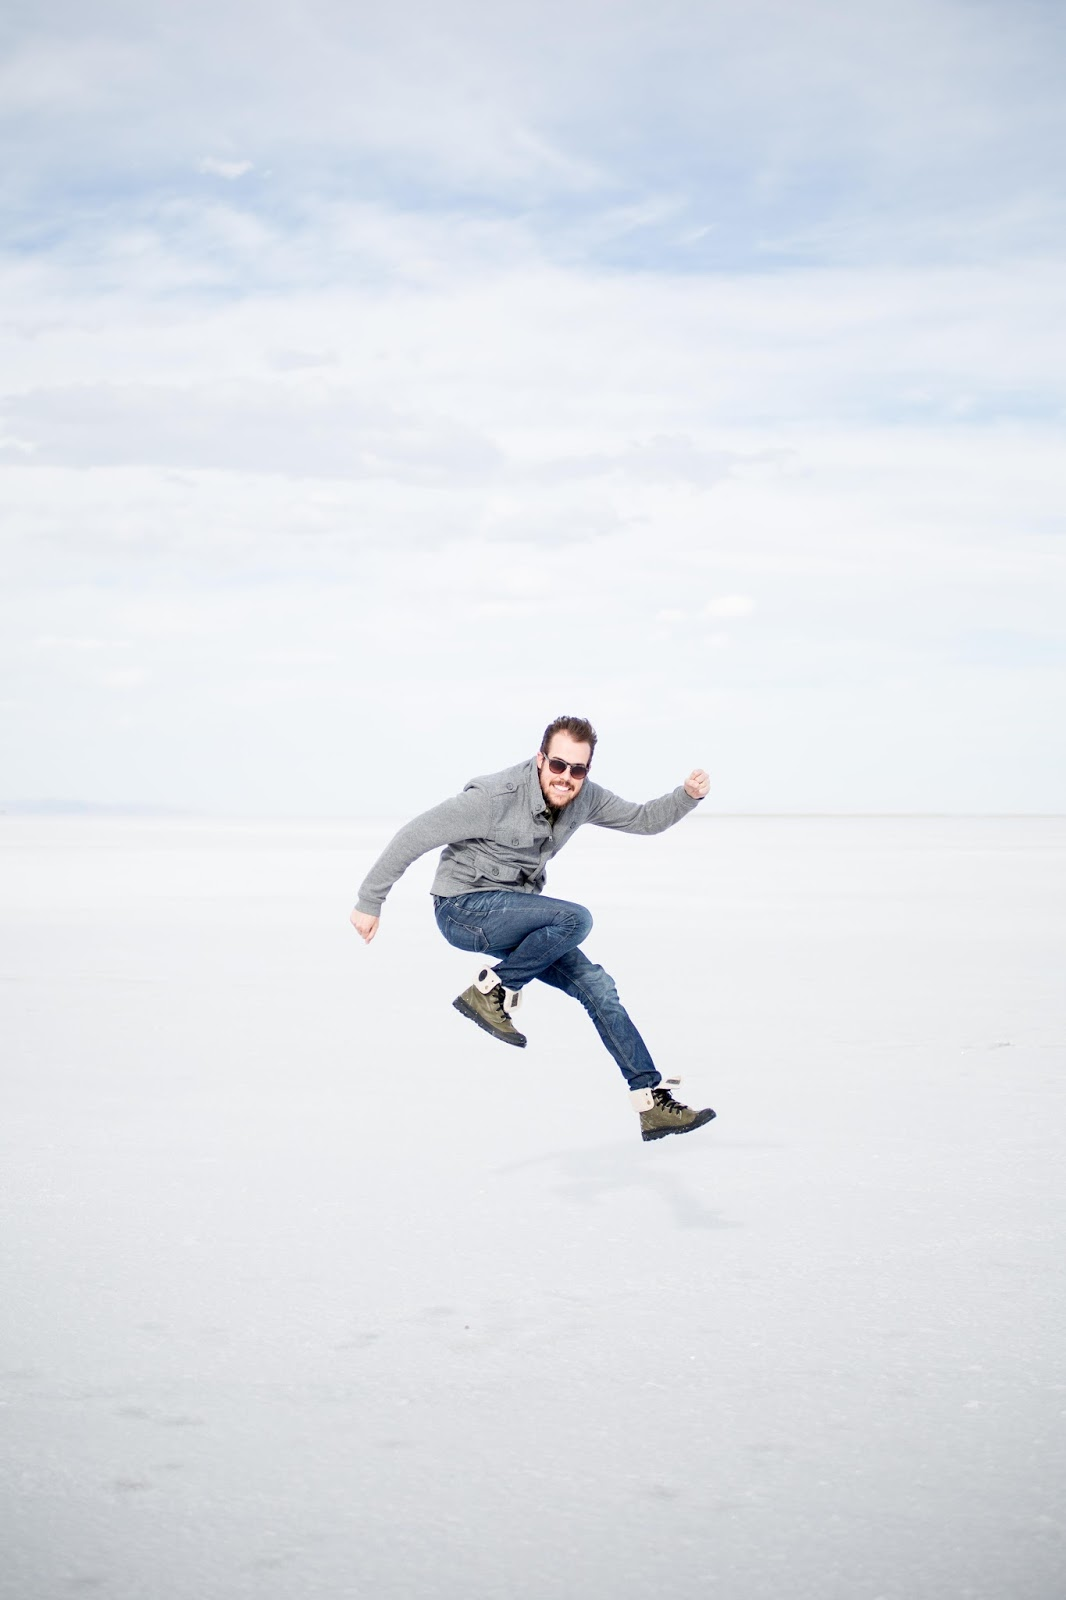 The Bonneville Salt Flats